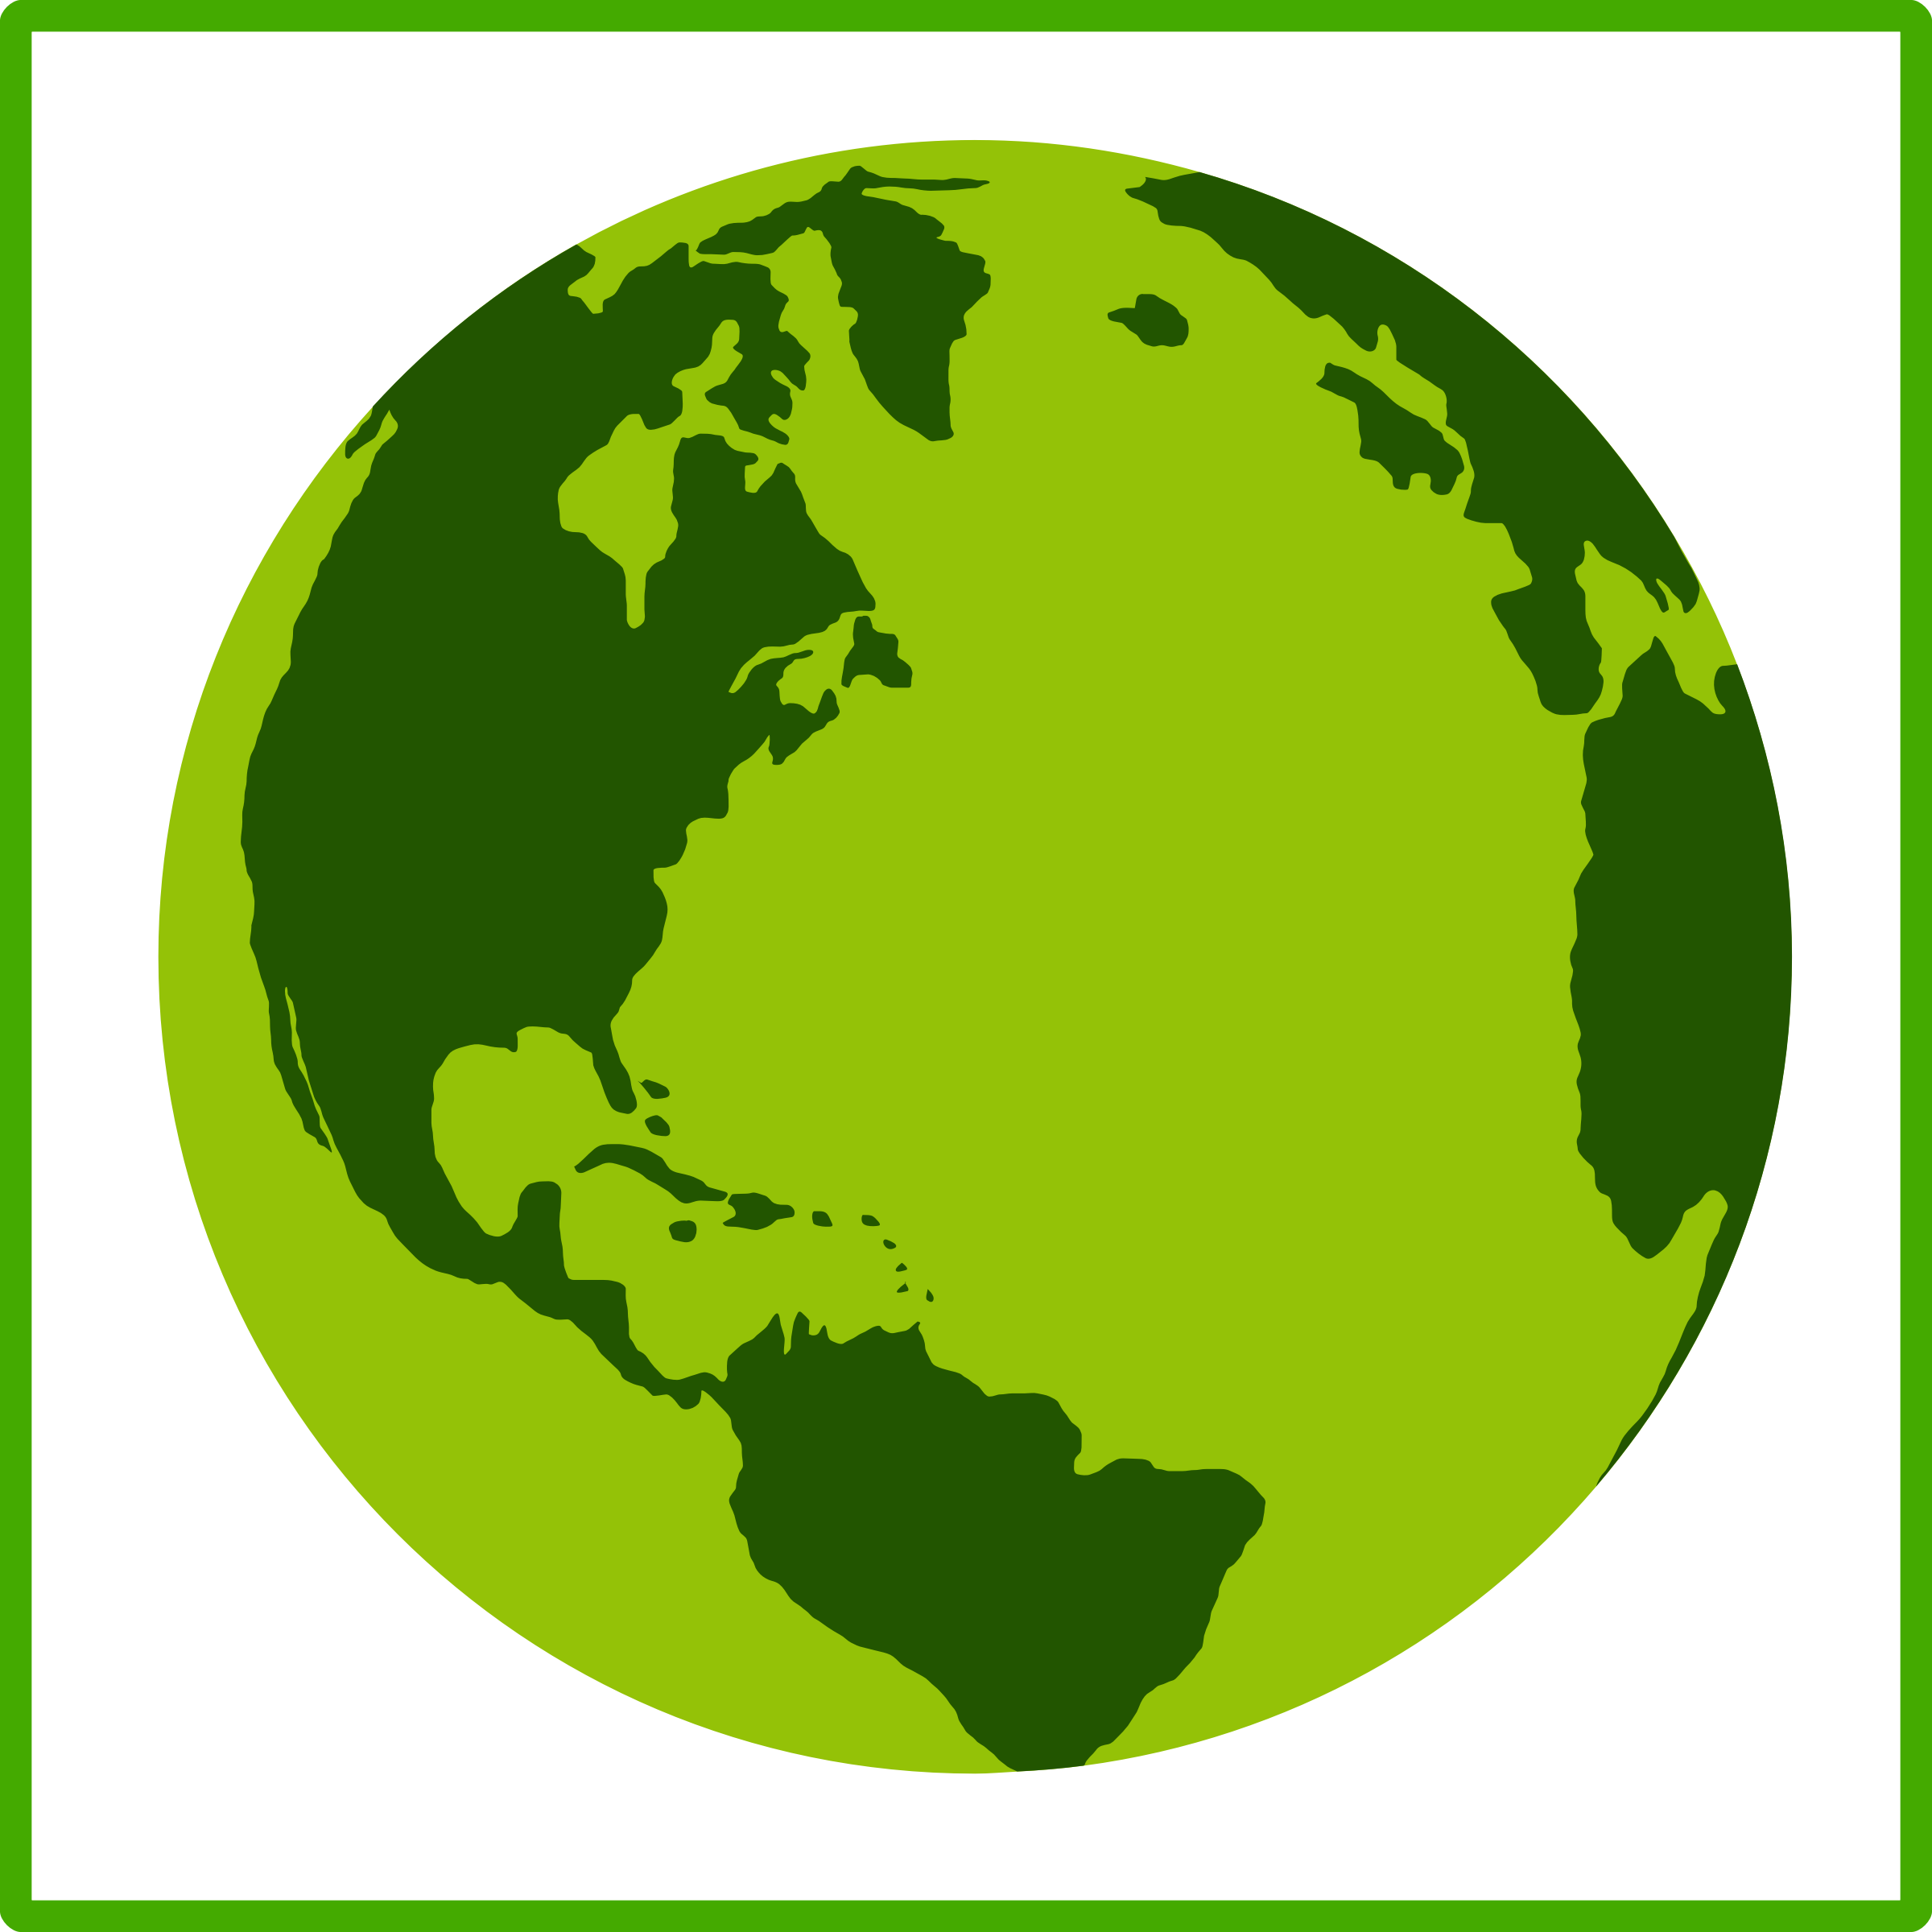 Planet clipart green planet. Eco earth icon big